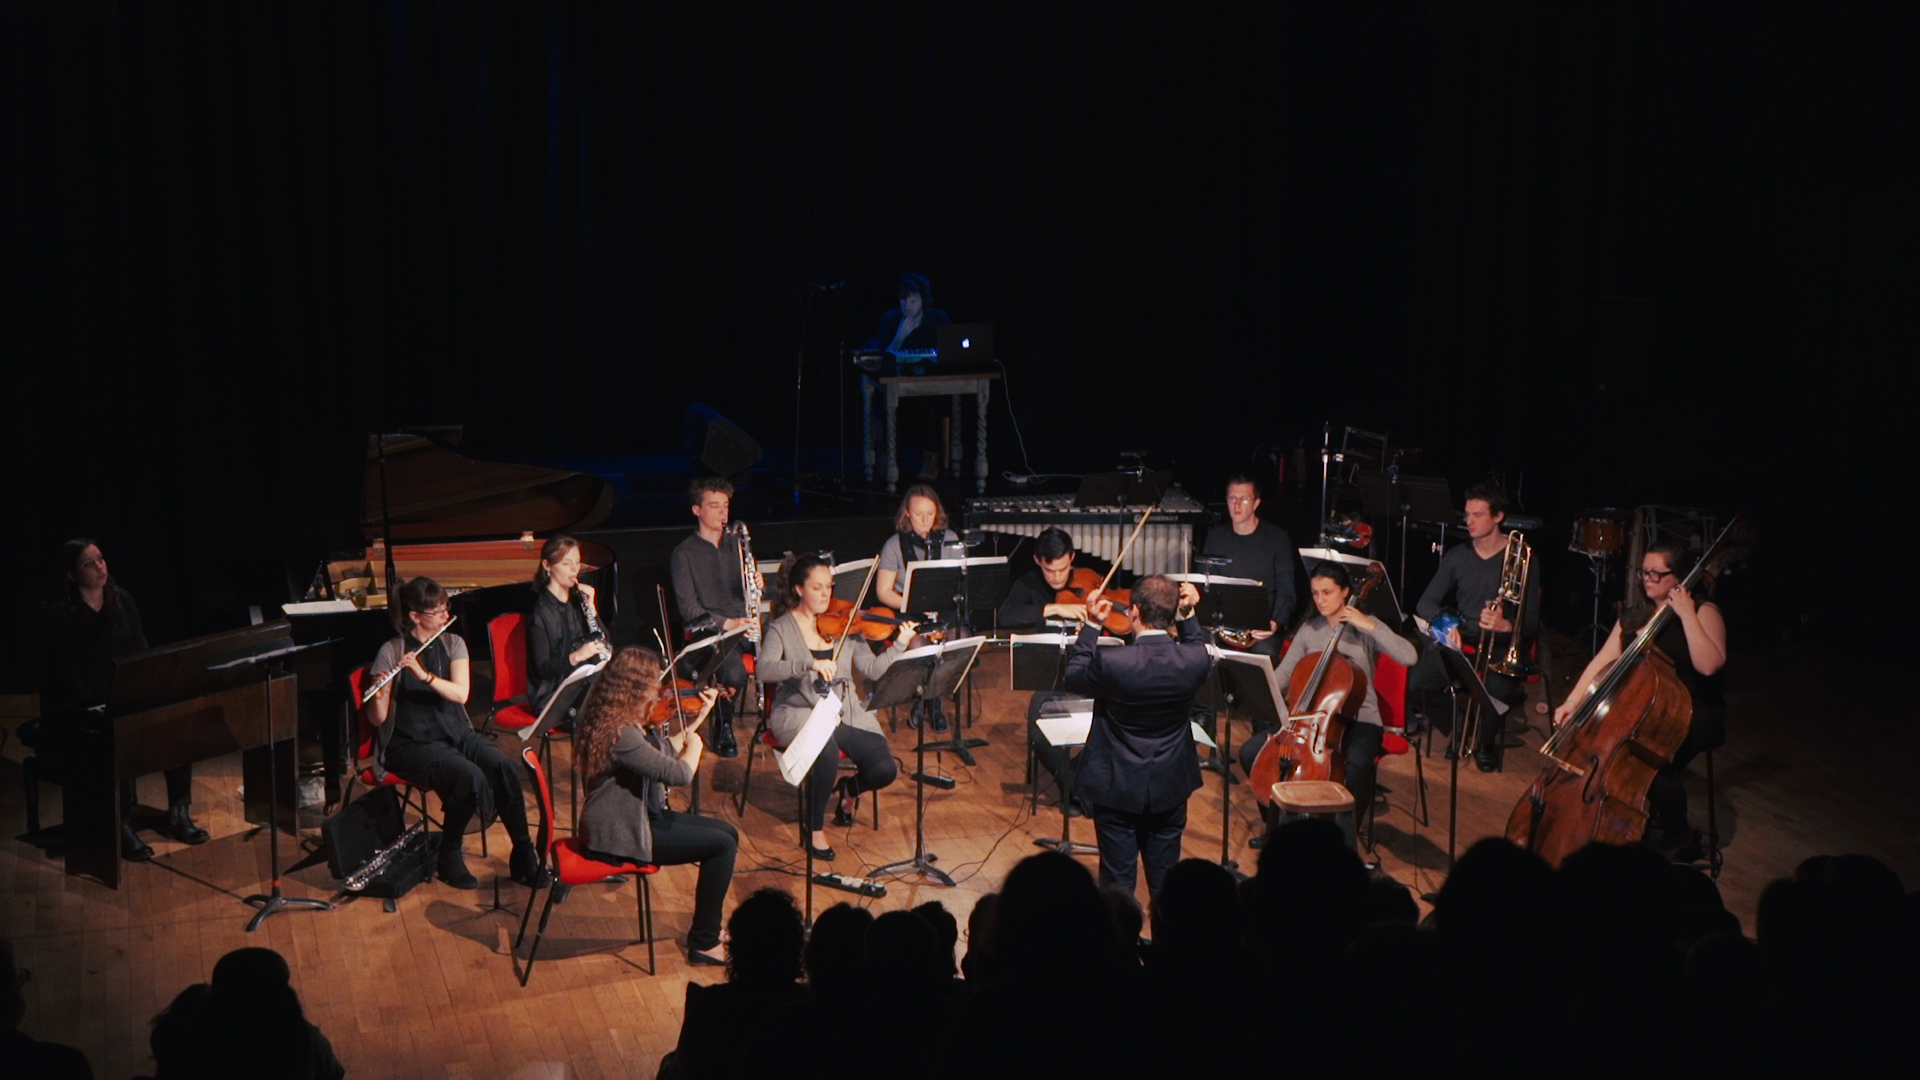 ALDAorchestra. 6 December 2016. The Old Market, Brighton, UK. Conductor: Helgi R. Ingvarsson.